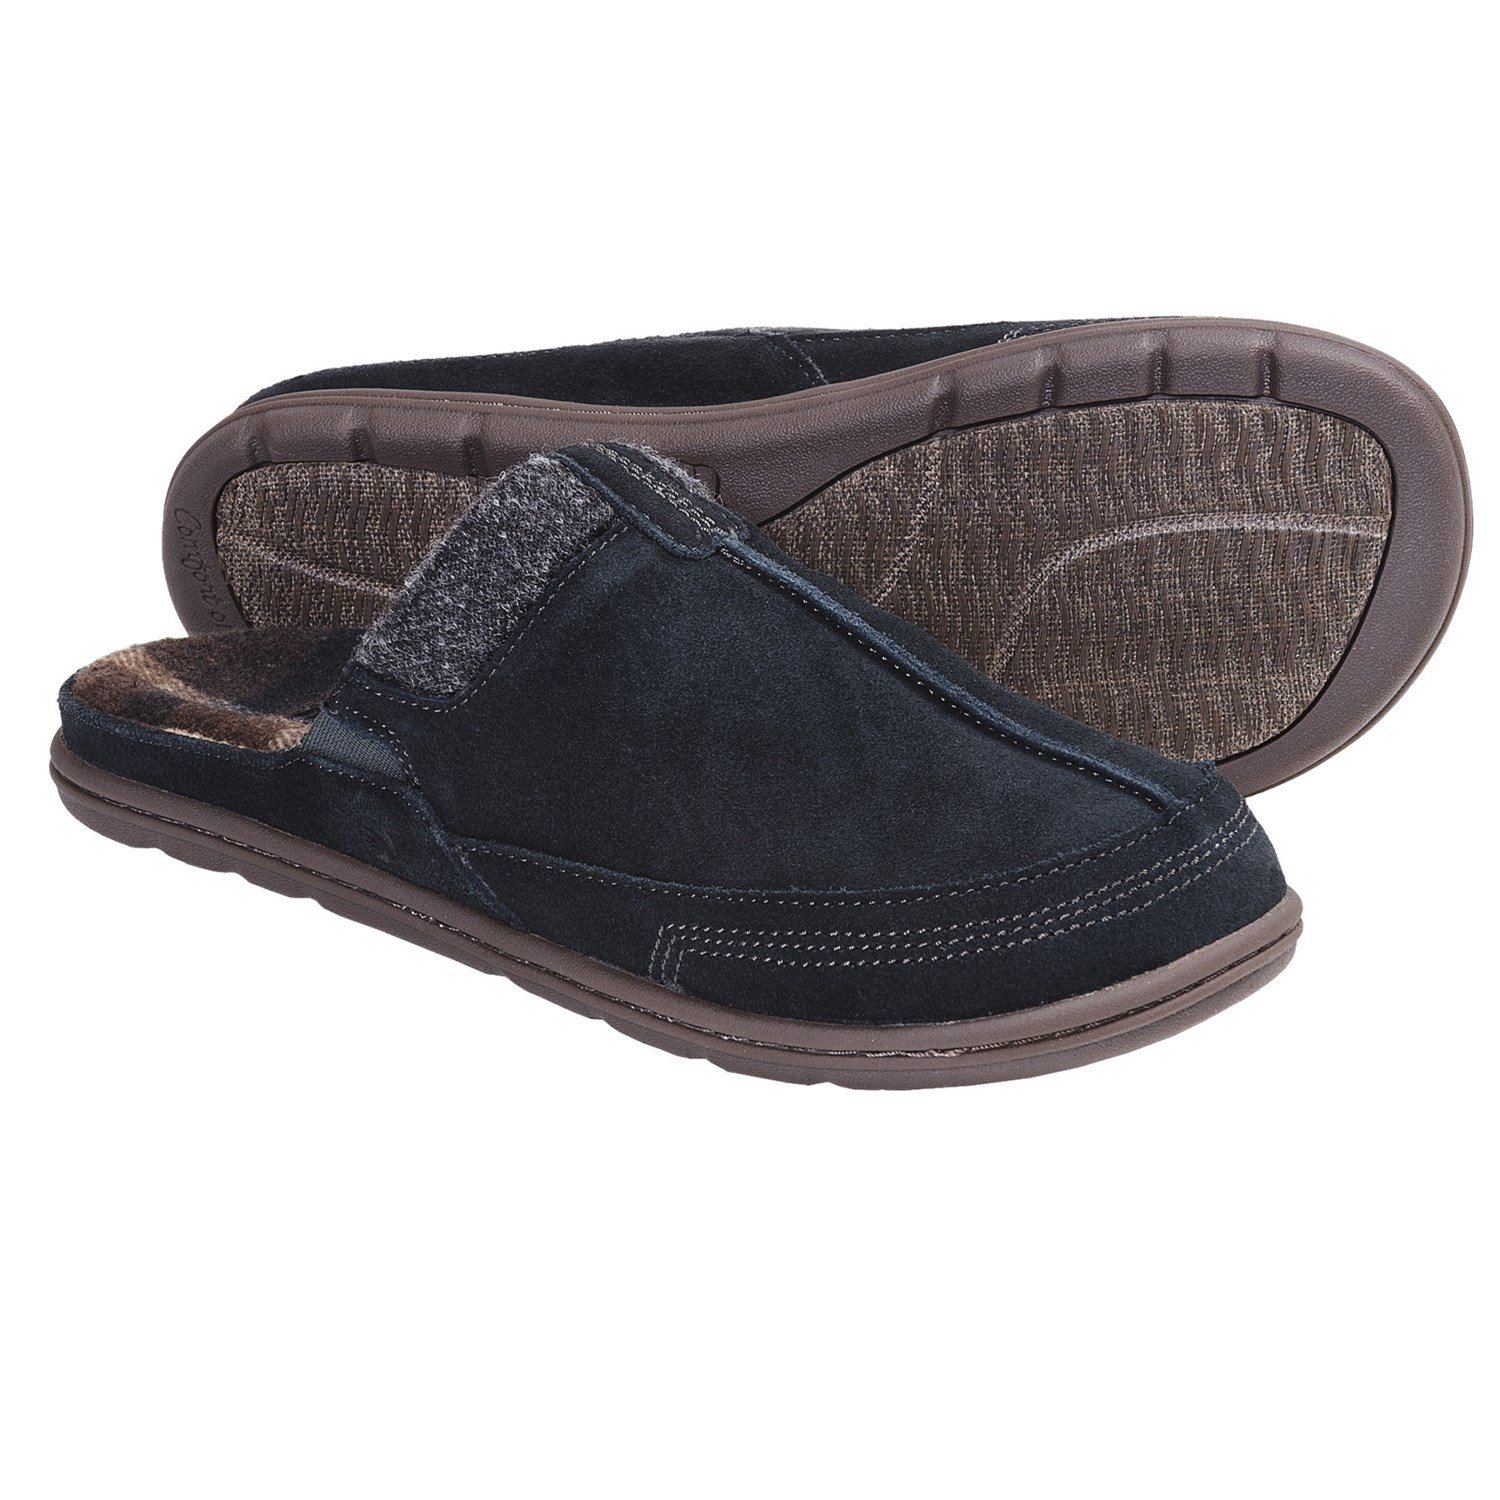 Best Acorn House Slippers Division Of Global Affairs With Pictures